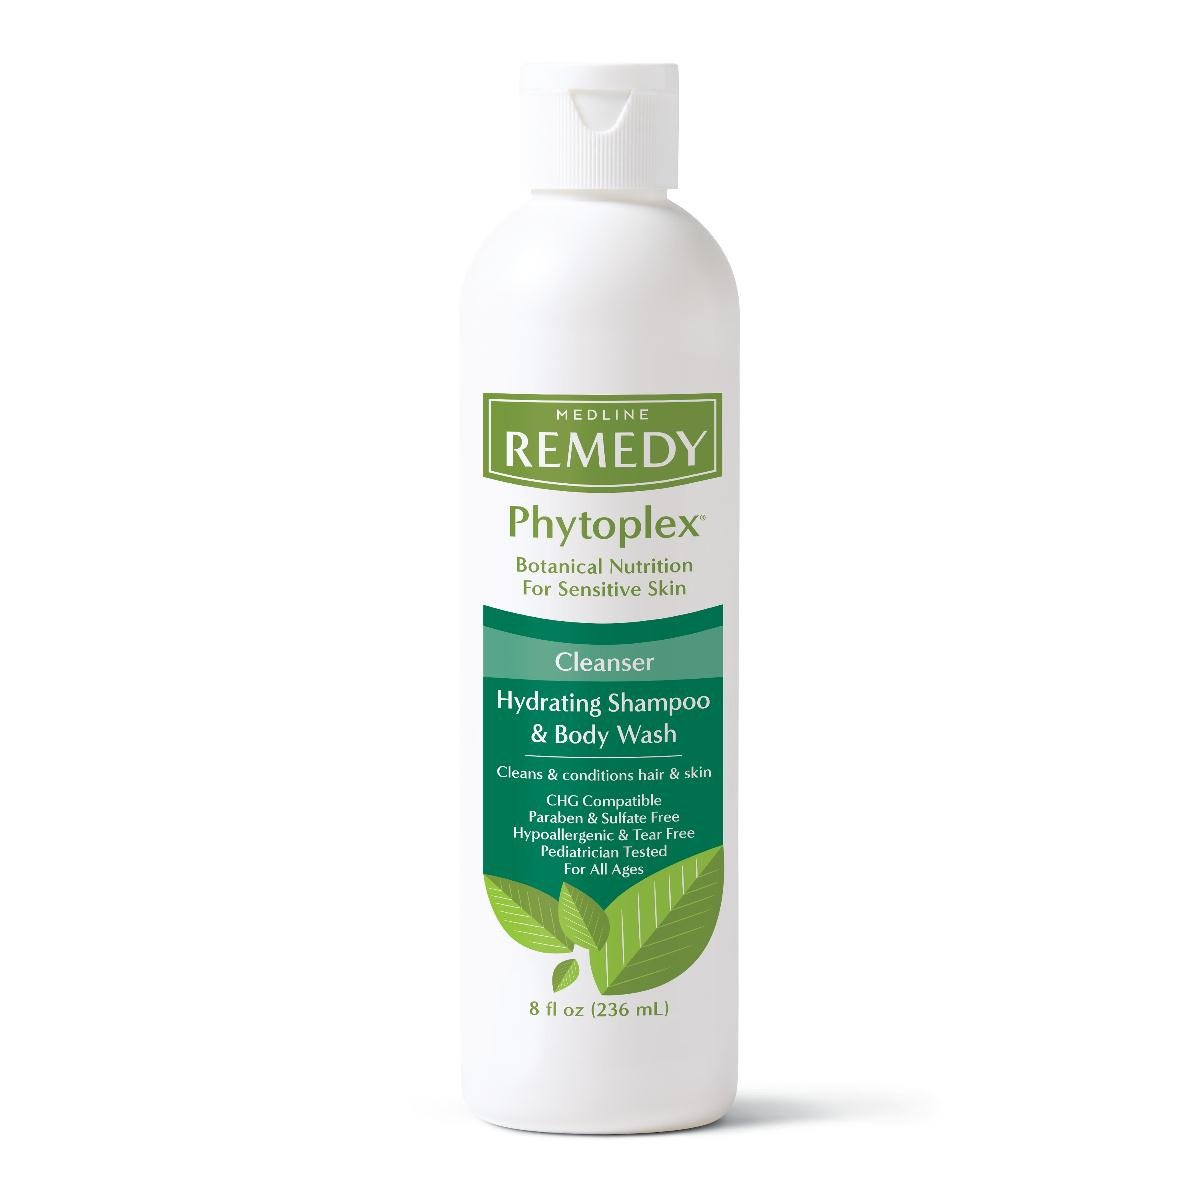 Medline MSC092002 Remedy with Phytoplex Hydrating Cleansing Gel, 2 oz pack of 96